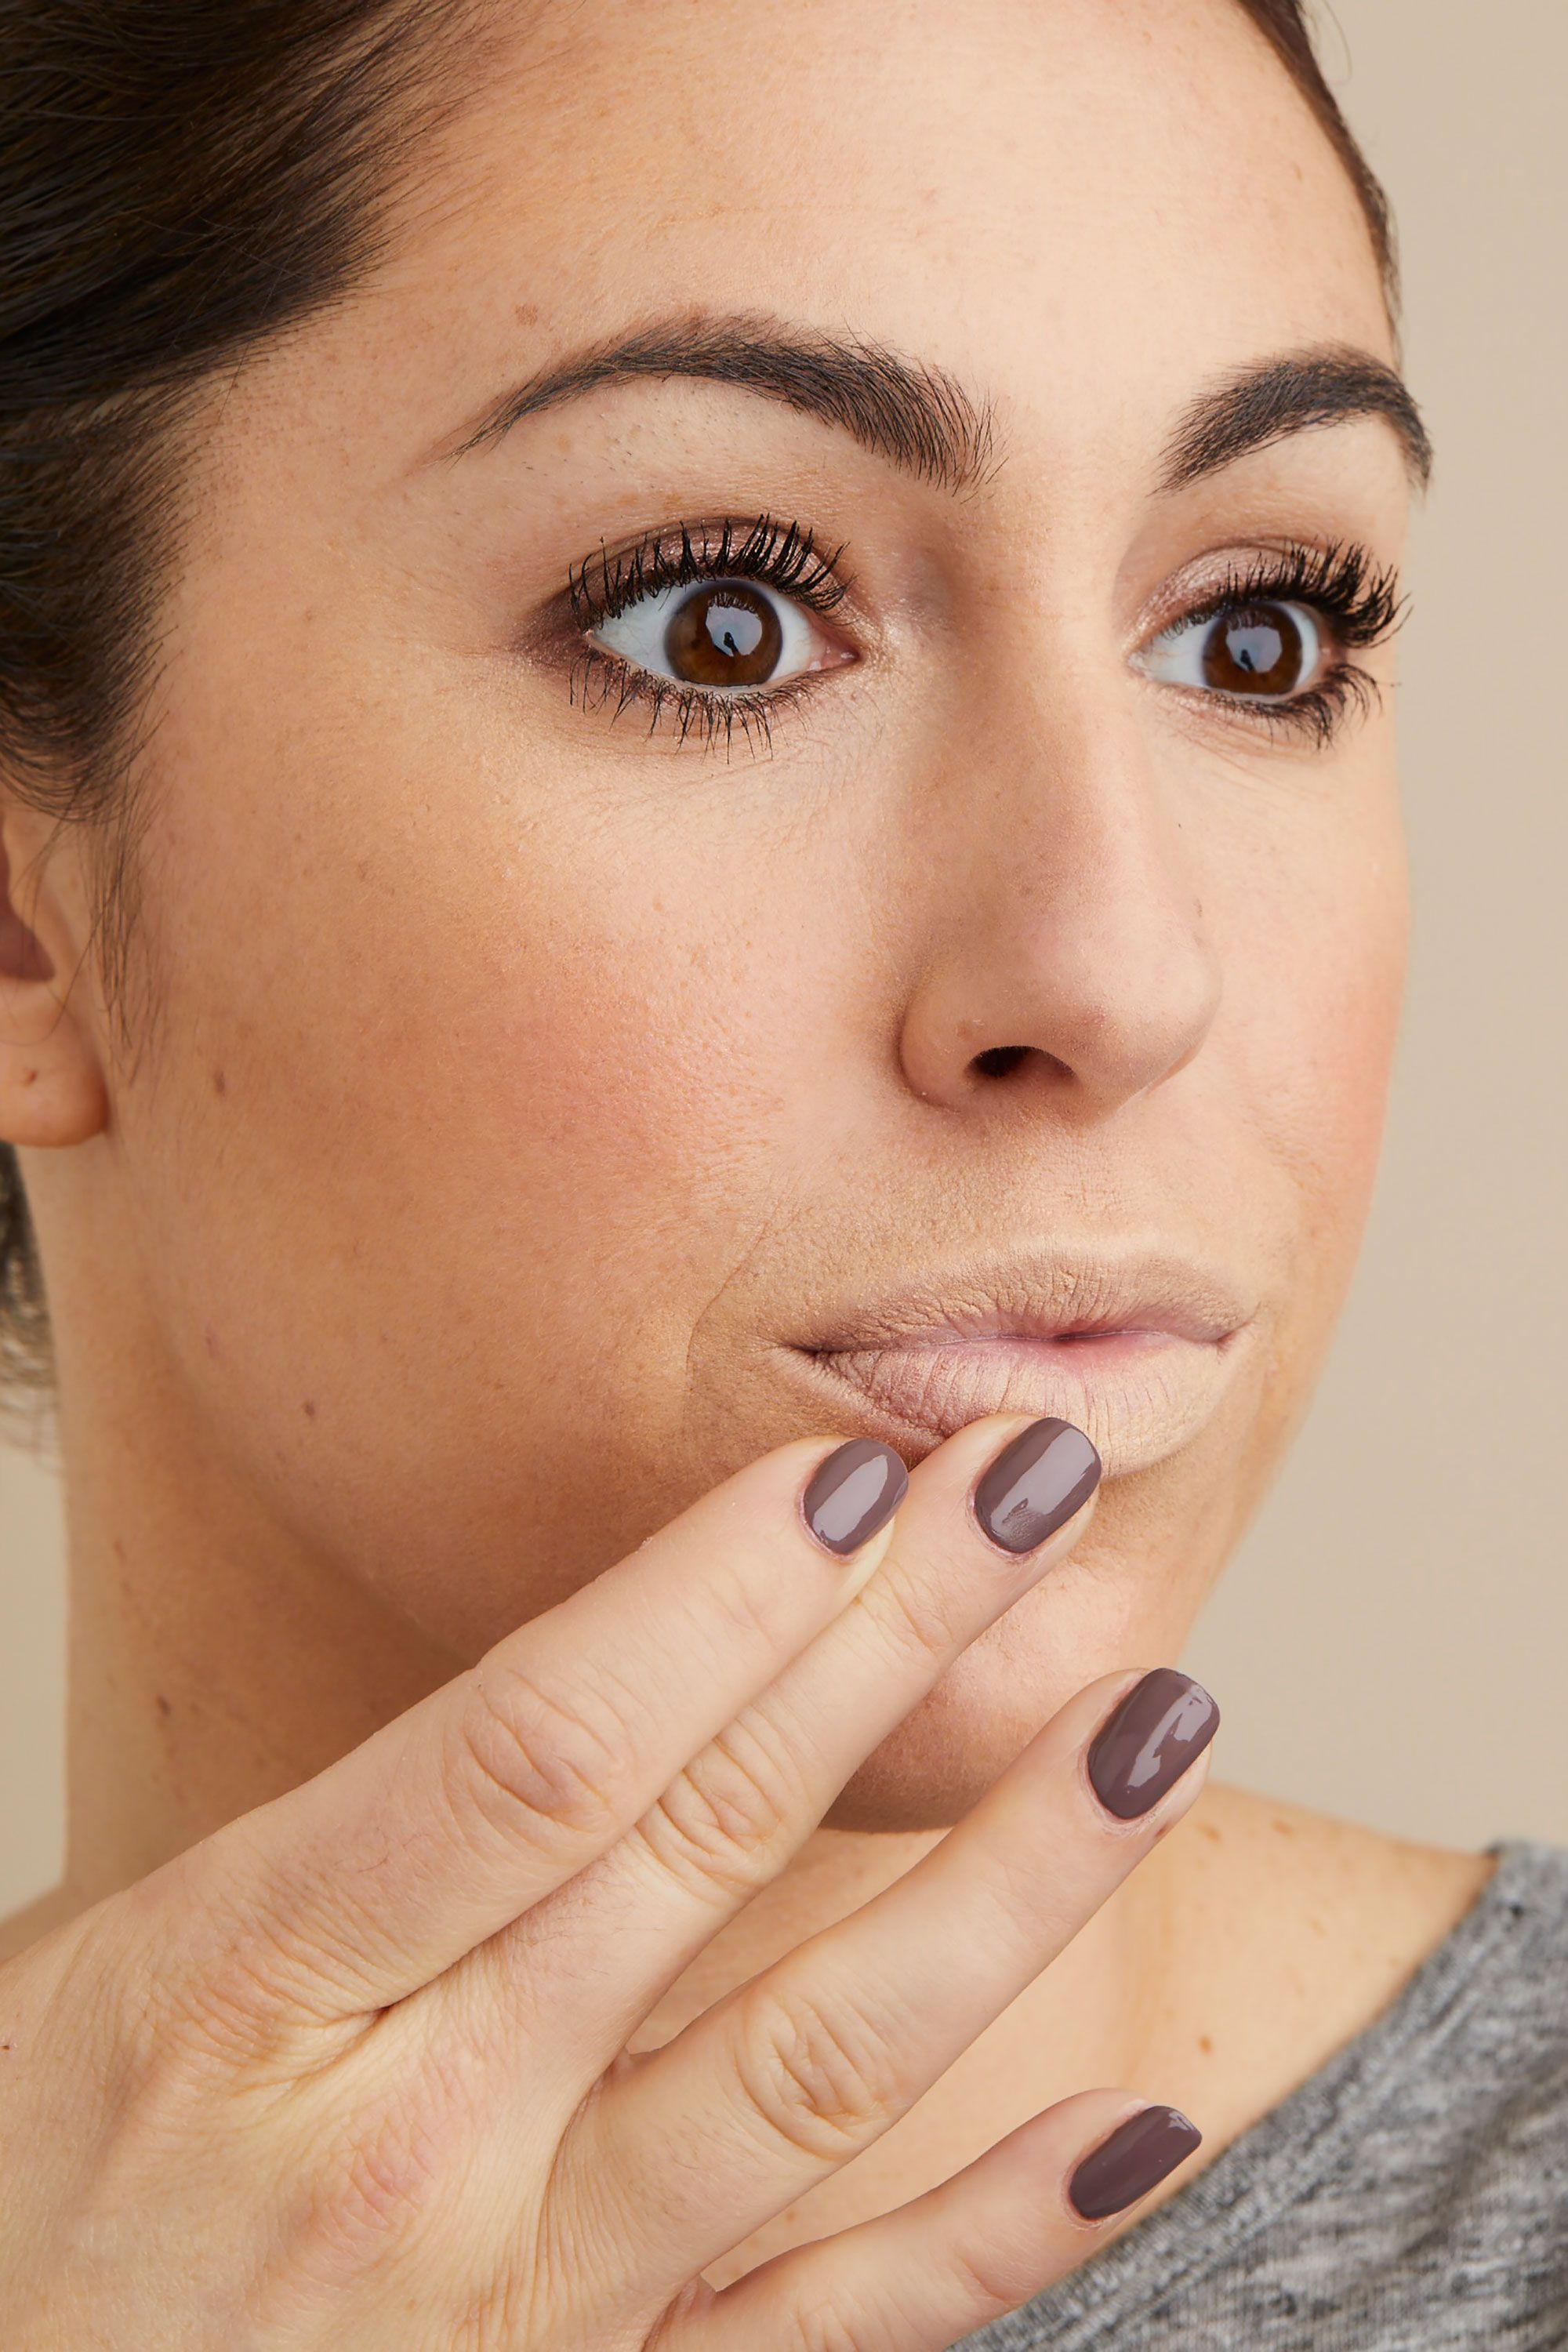 """<p>Next, tap a thin layer of the concealer over your entire mouth. (If your lips are dry, dab on a bit of waxy balm first and wait a minute for it to be absorbed.) This helps your lipstick adhere so it won't fade or run.<span class=""""redactor-invisible-space"""" data-verified=""""redactor"""" data-redactor-tag=""""span"""" data-redactor-class=""""redactor-invisible-space""""></span></p><p><strong data-verified=""""redactor"""" data-redactor-tag=""""strong"""">RELATED:<a href=""""http://www.redbookmag.com/beauty/makeup-skincare/g3332/best-lipstick-shades-for-every-skin-tone/"""" target=""""_blank"""" data-tracking-id=""""recirc-text-link"""">The Perfect Lipstick Shades for Every Skin Tone</a><span class=""""redactor-invisible-space""""><a href=""""http://www.redbookmag.com/beauty/makeup-skincare/g3332/best-lipstick-shades-for-every-skin-tone/""""></a></span></strong><br></p>"""